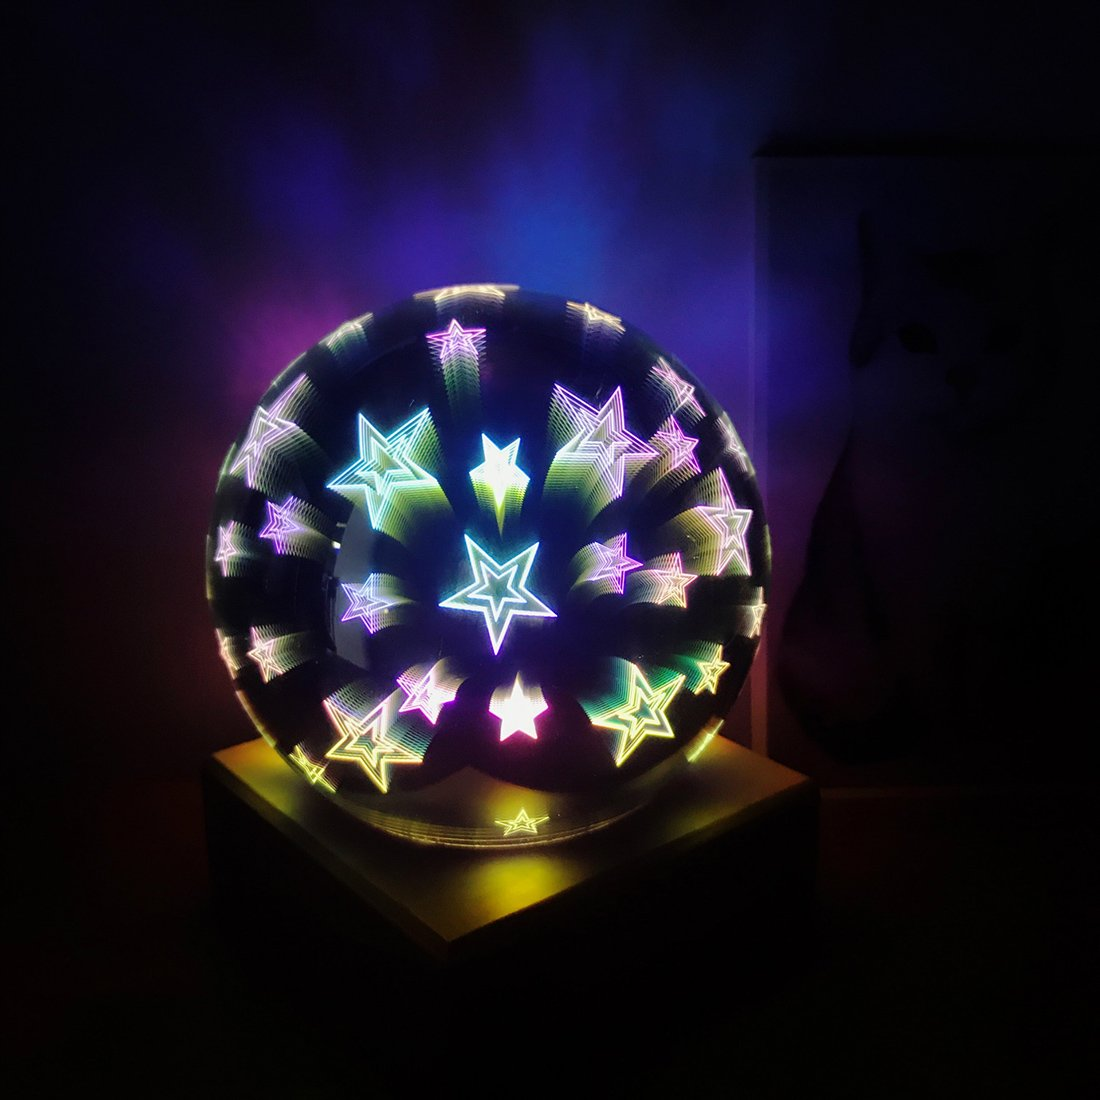 Tmore  3D Fireworks Night Light, Glass Lamp Magical Crystal Ball USB Power Starry Decorative Lamp Colorful Sphere Table Light (Stars)